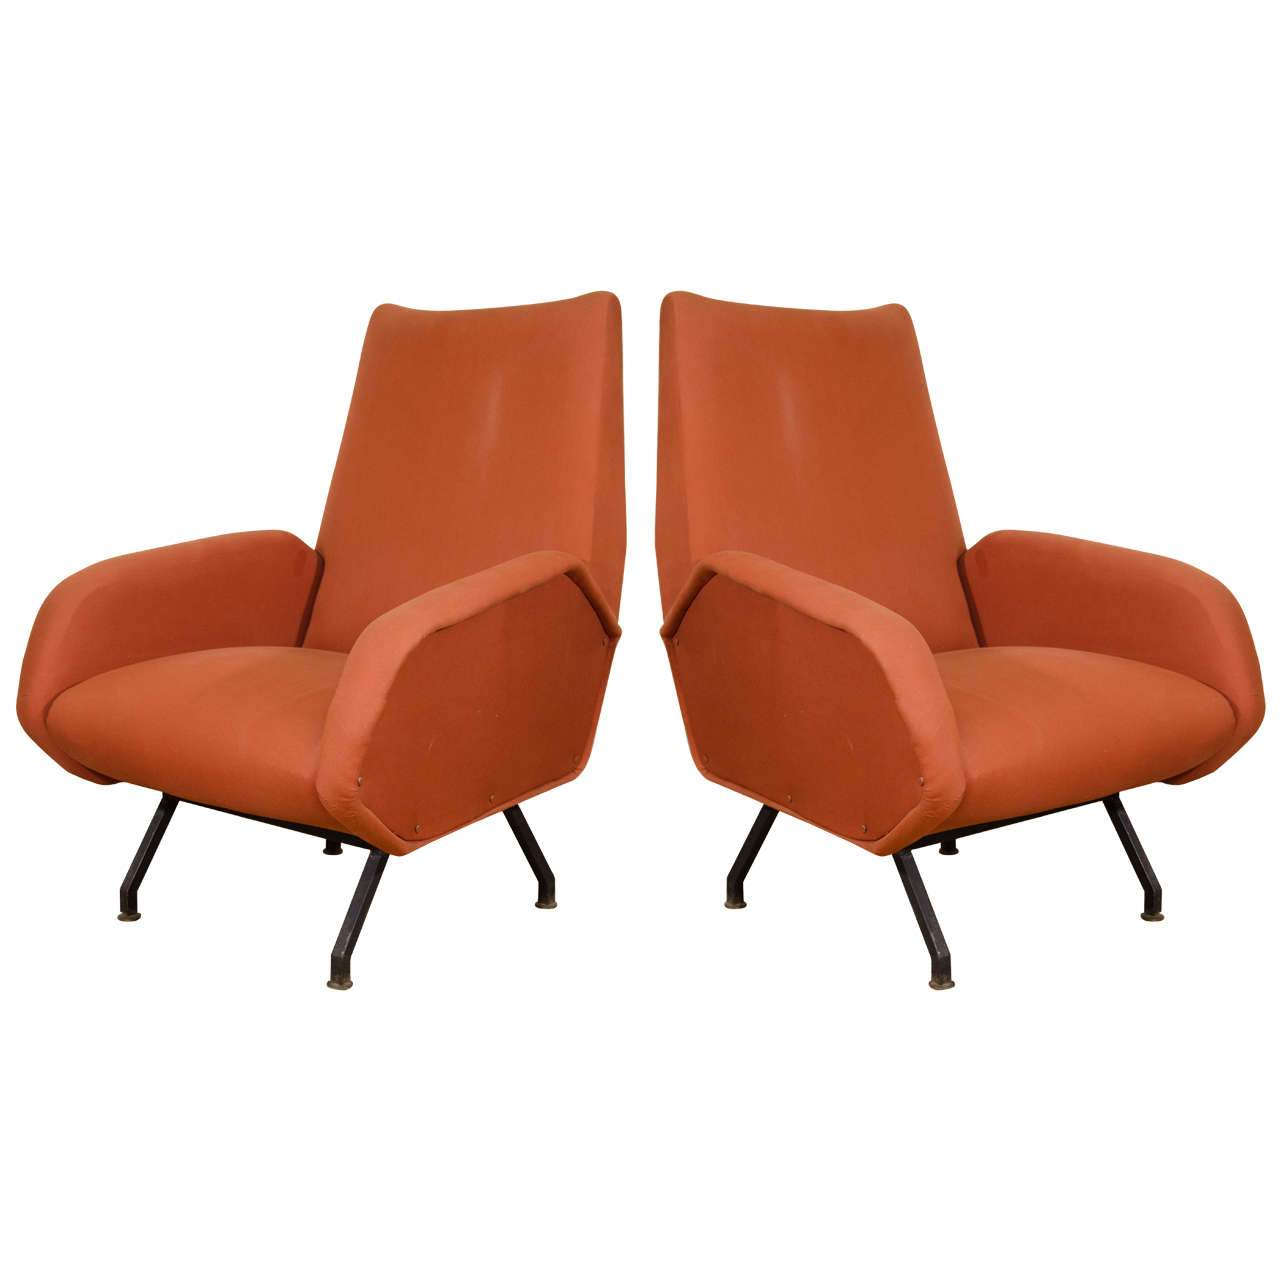 Rust Colored Chair: Midcentury Pair Of Italian Rust Colored Lounge Chairs At